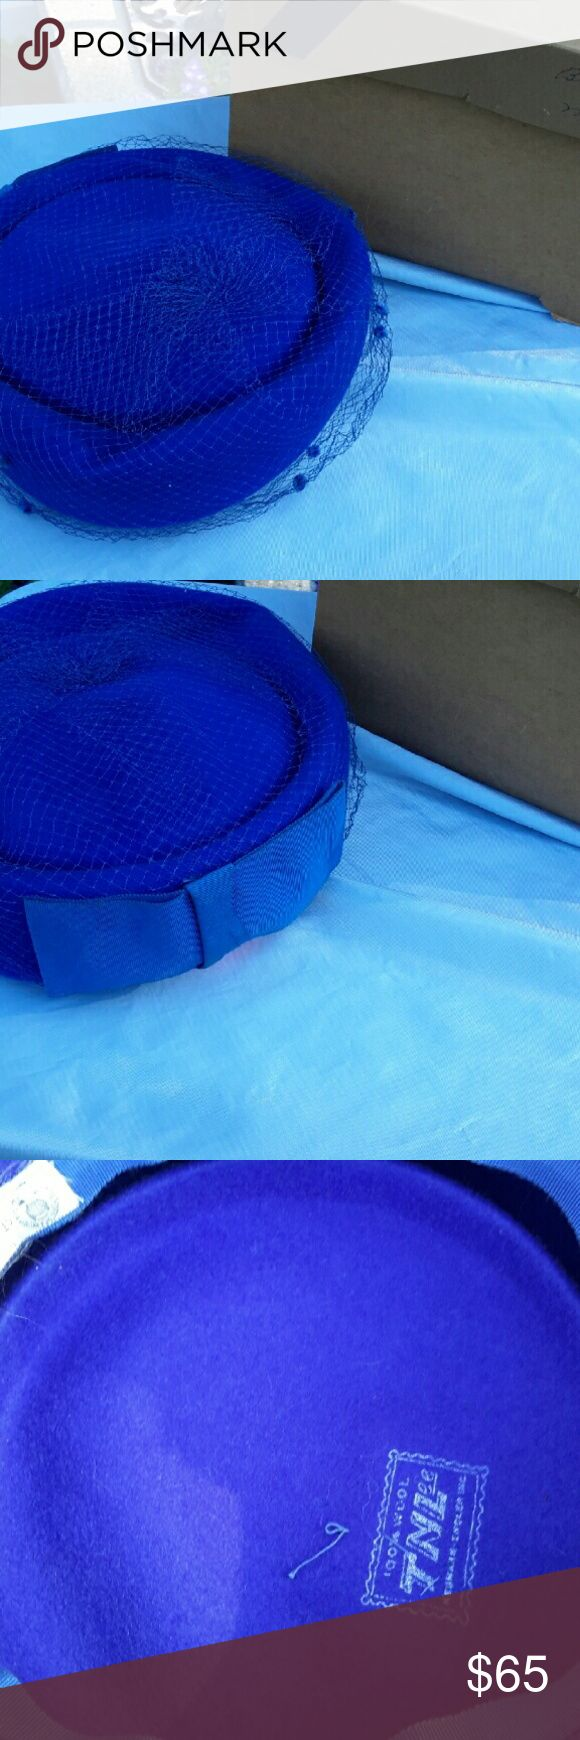 Vintage pill box hat Blue with box Accessories Hats